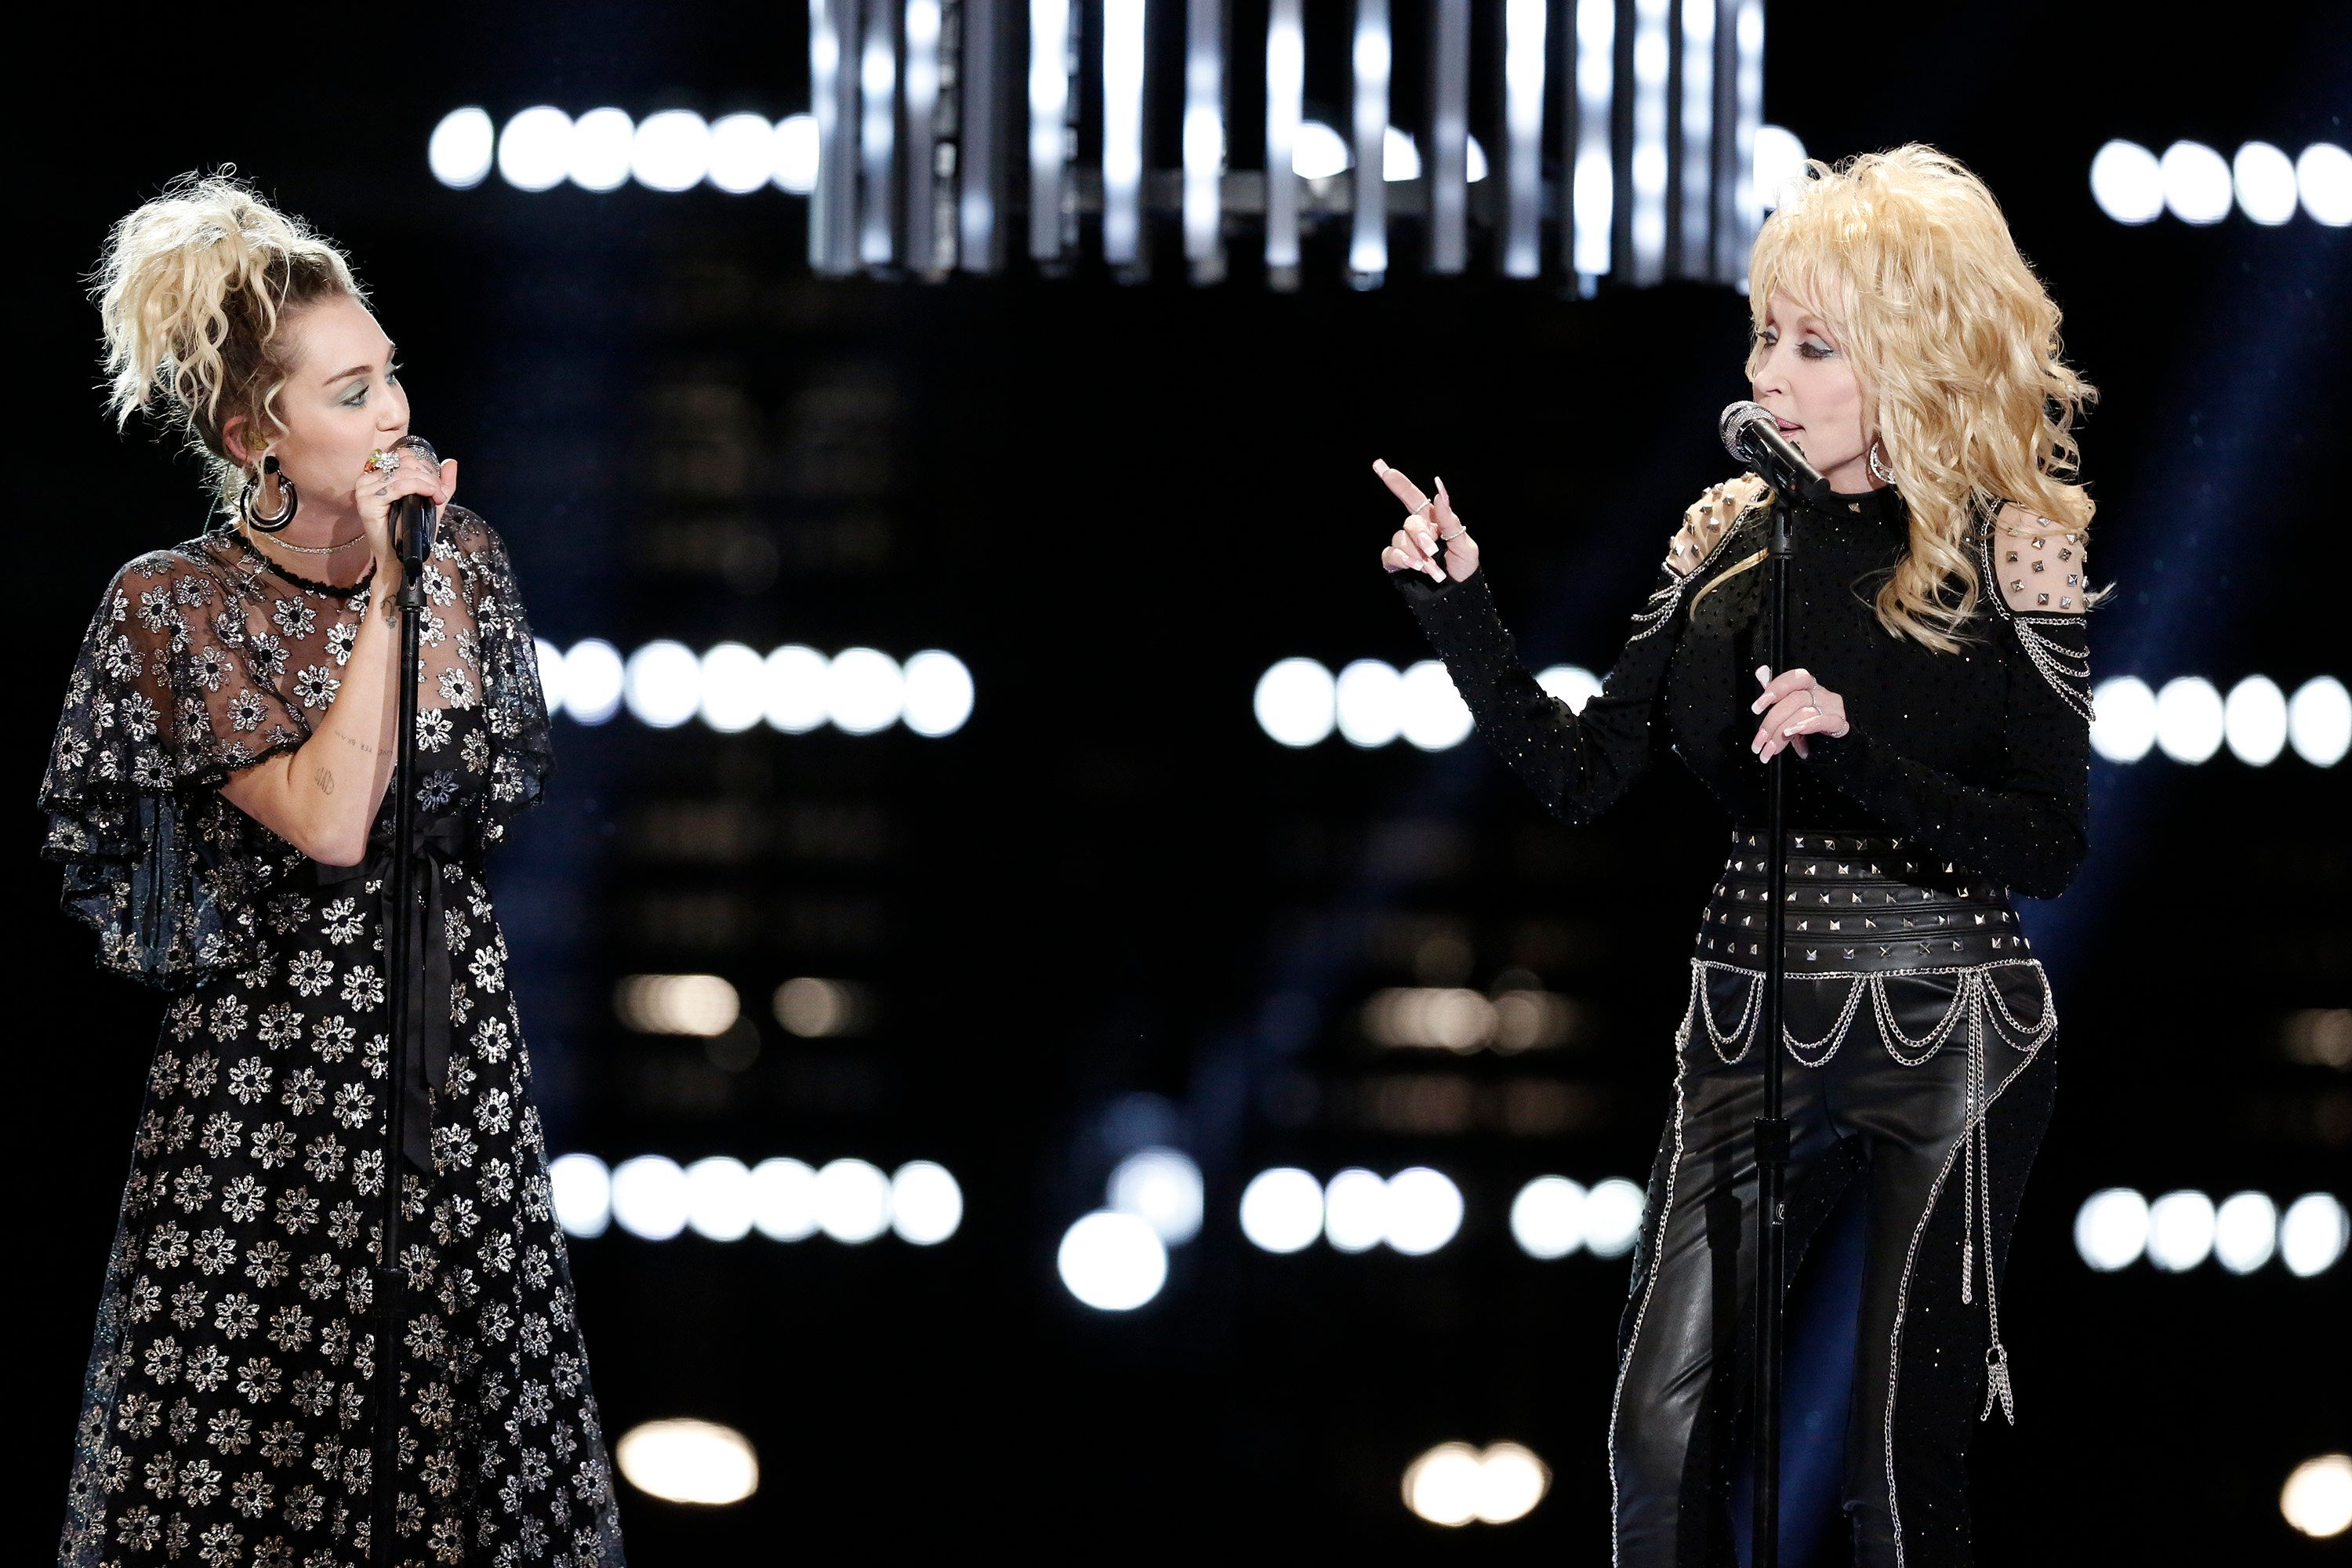 THE VOICE -- 'Live Top 10' Episode 1116B -- Pictured: (l-r) Miley Cyrus, Dolly Parton -- (Photo by: Tyler Golden/NBC/NBCU Photo Bank via Getty Images)